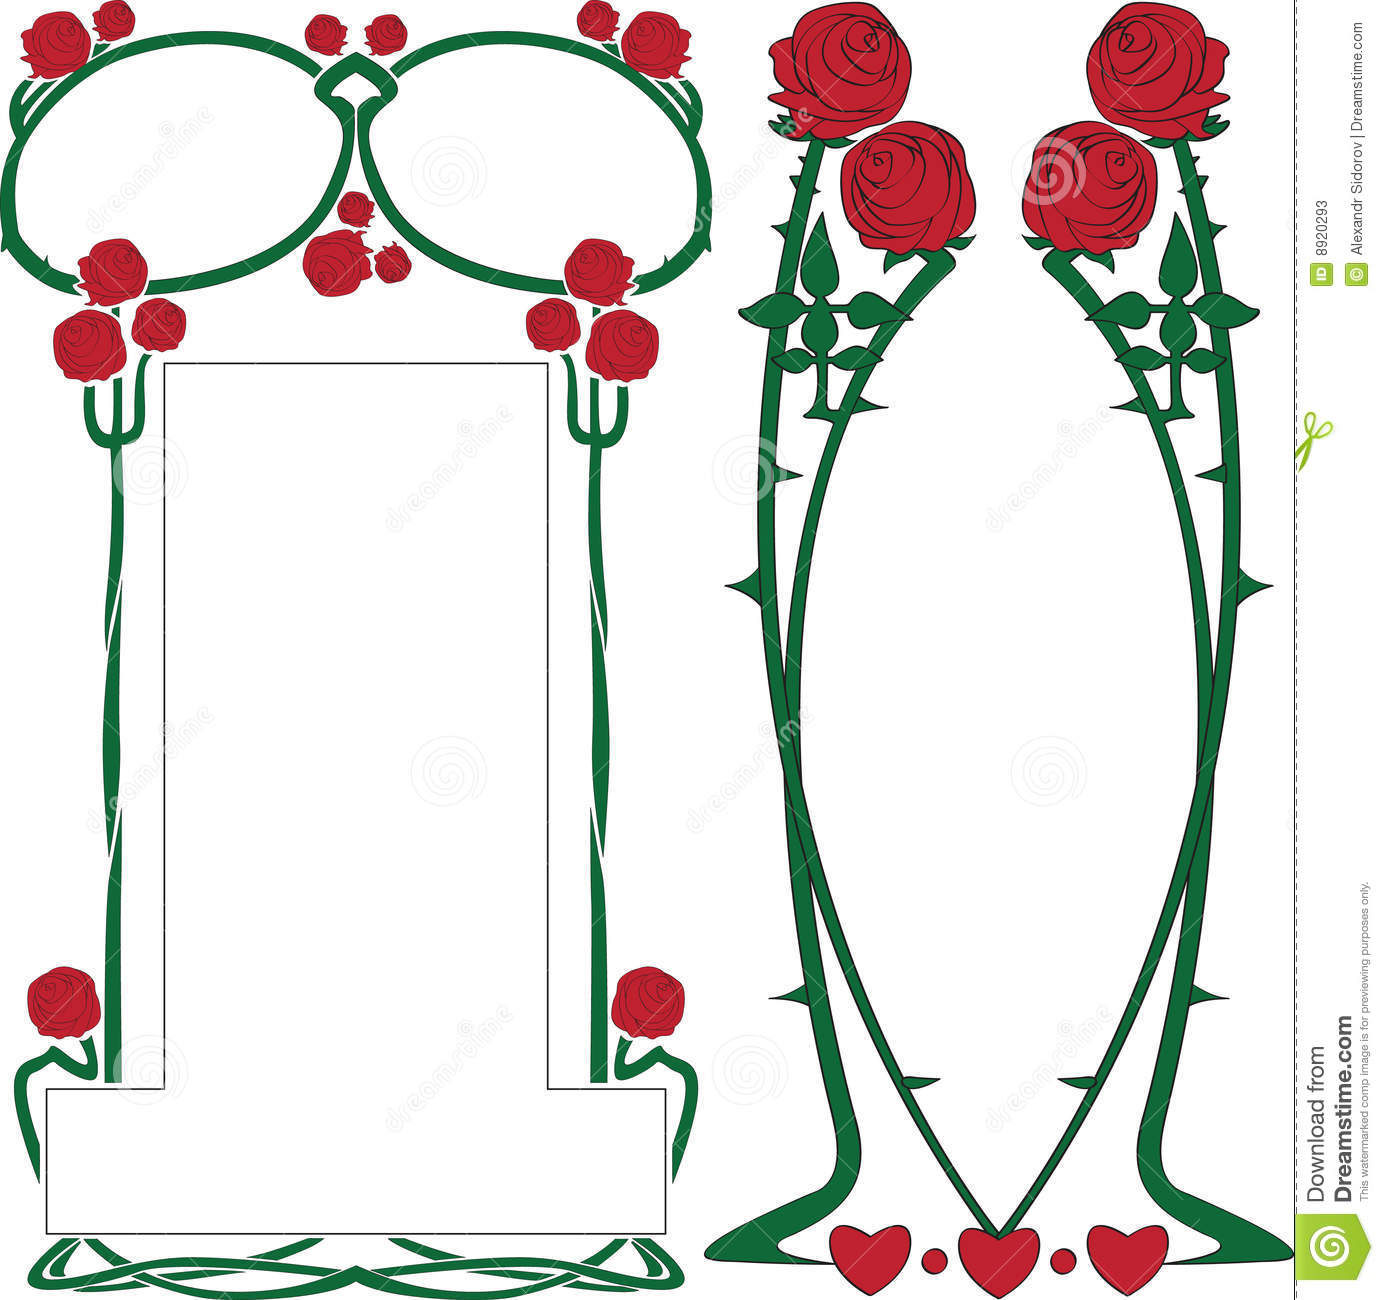 artnouveau border stock photos image 8920293